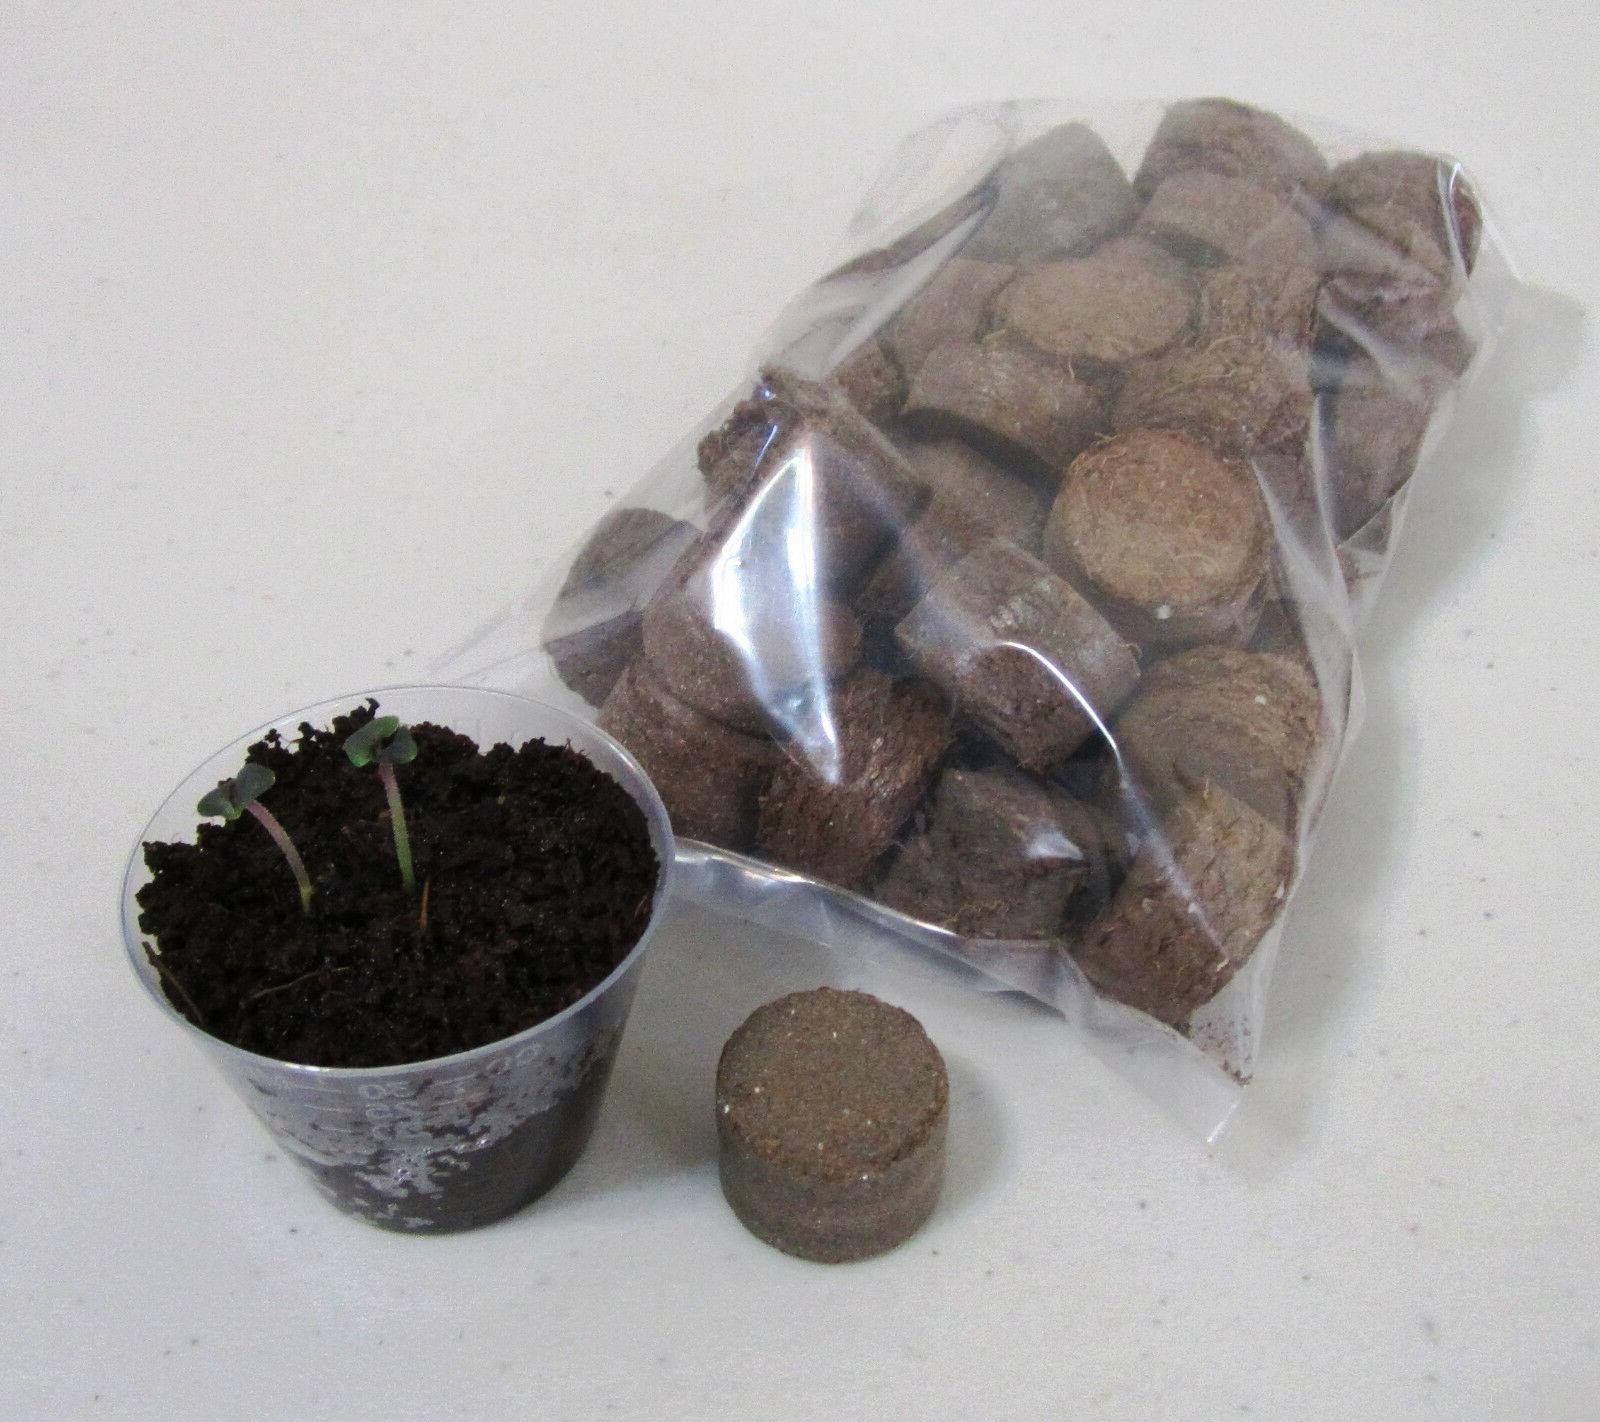 50 Germination Pods or Soil